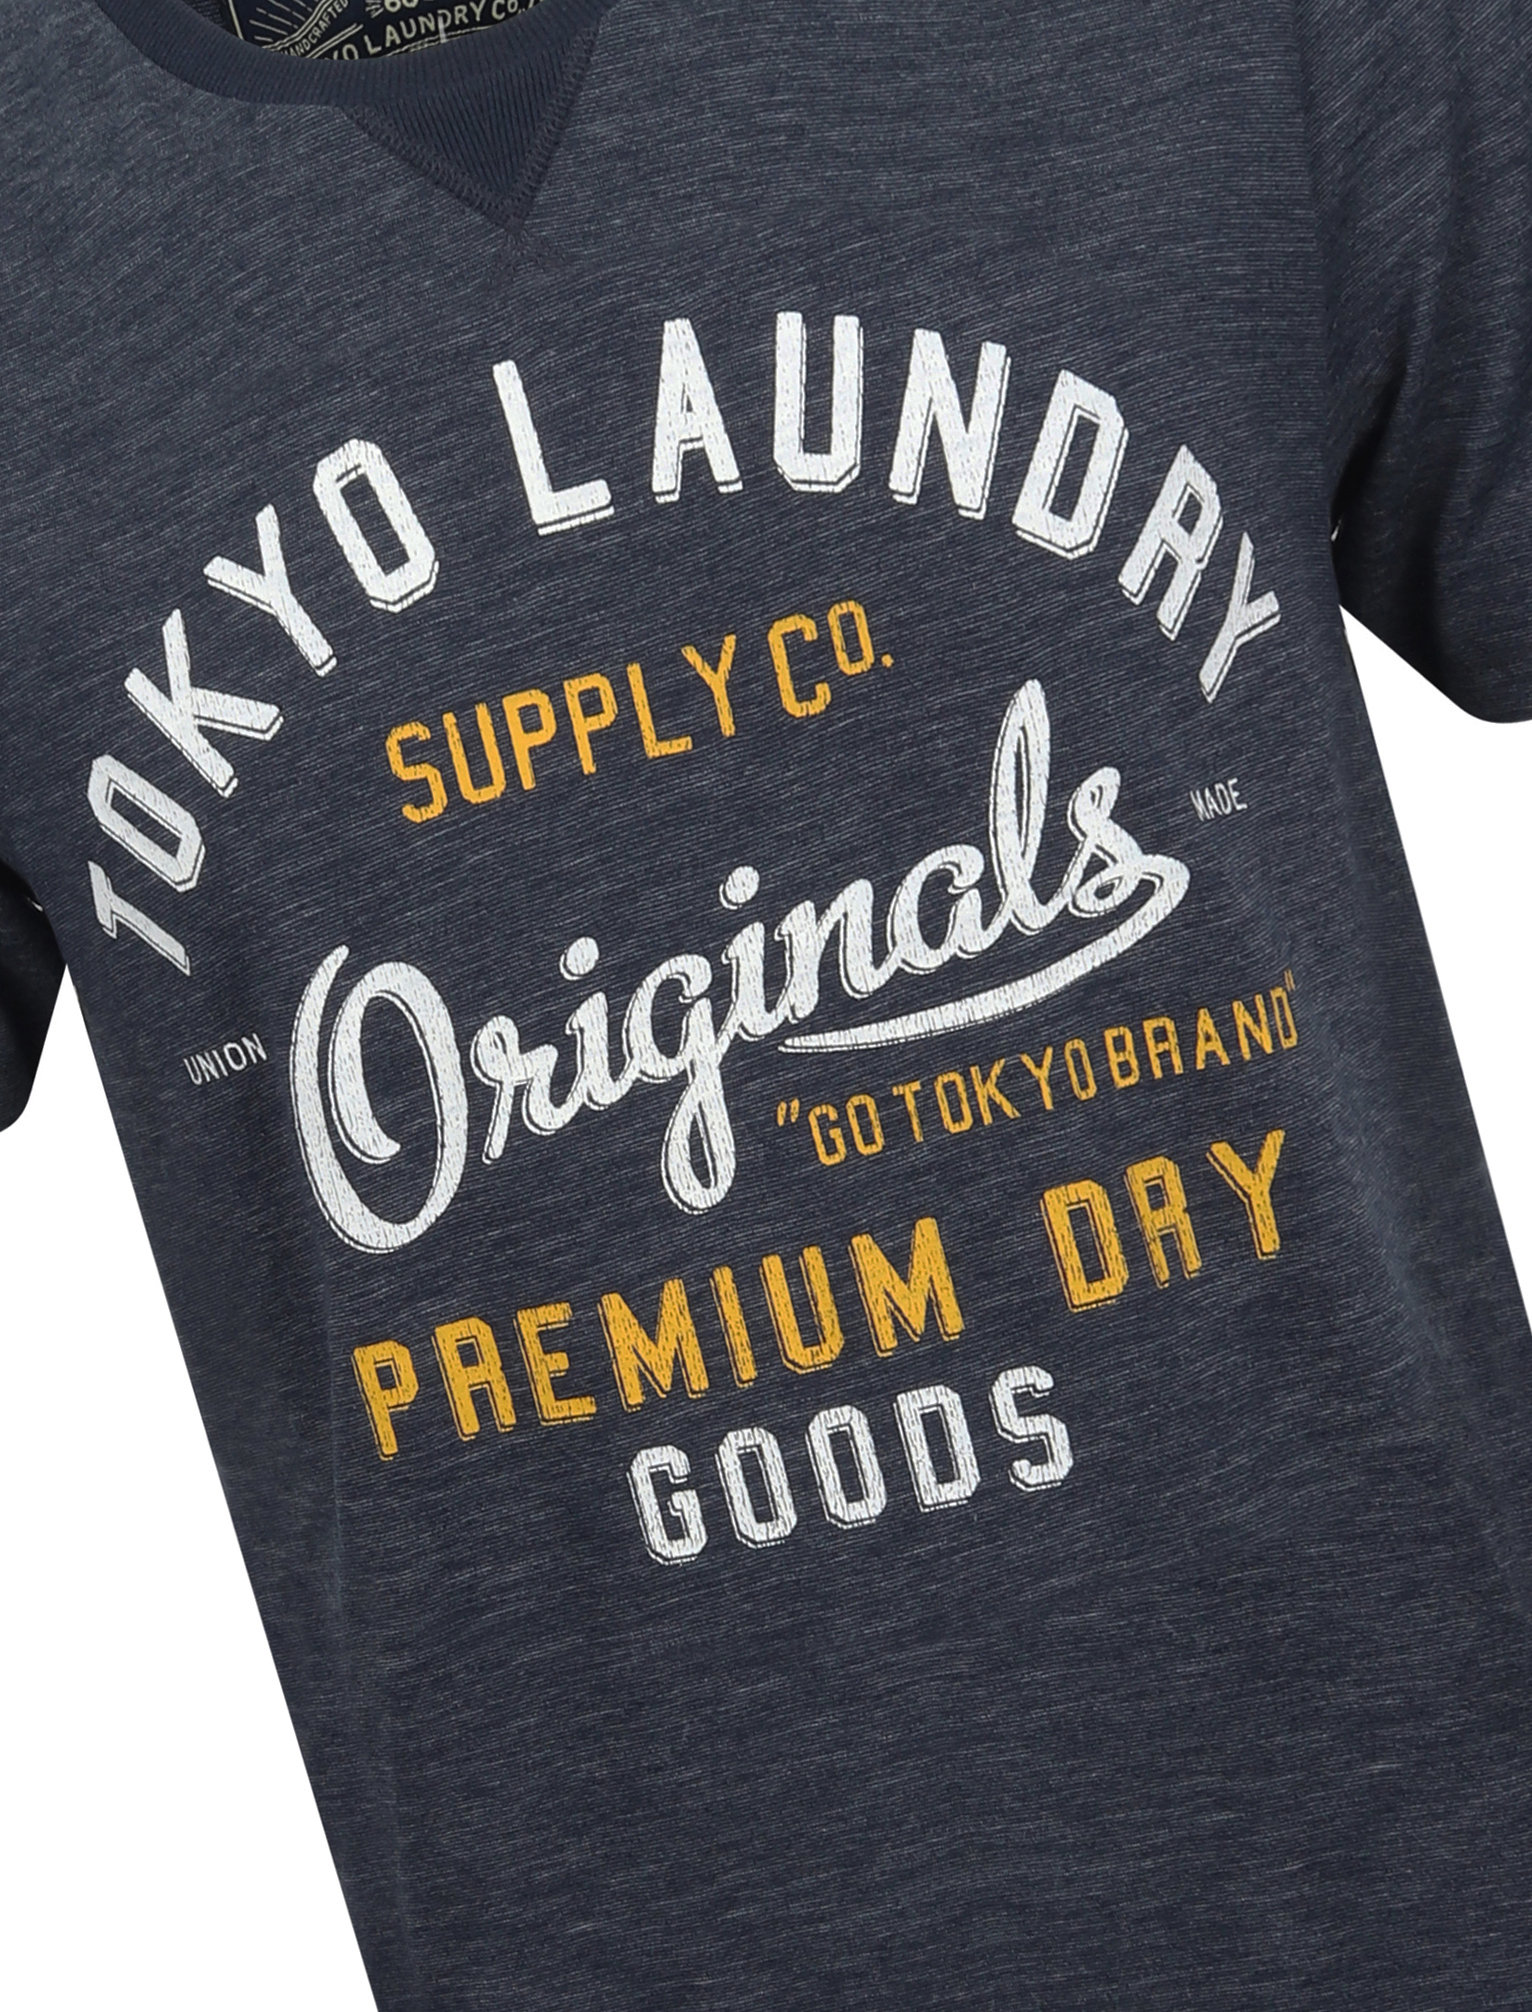 Tokyo-Laundry-Mens-Crew-Neck-T-Shirt-Vintage-Retro-Graphic-Print-Top-Size-S-XXL miniatura 81